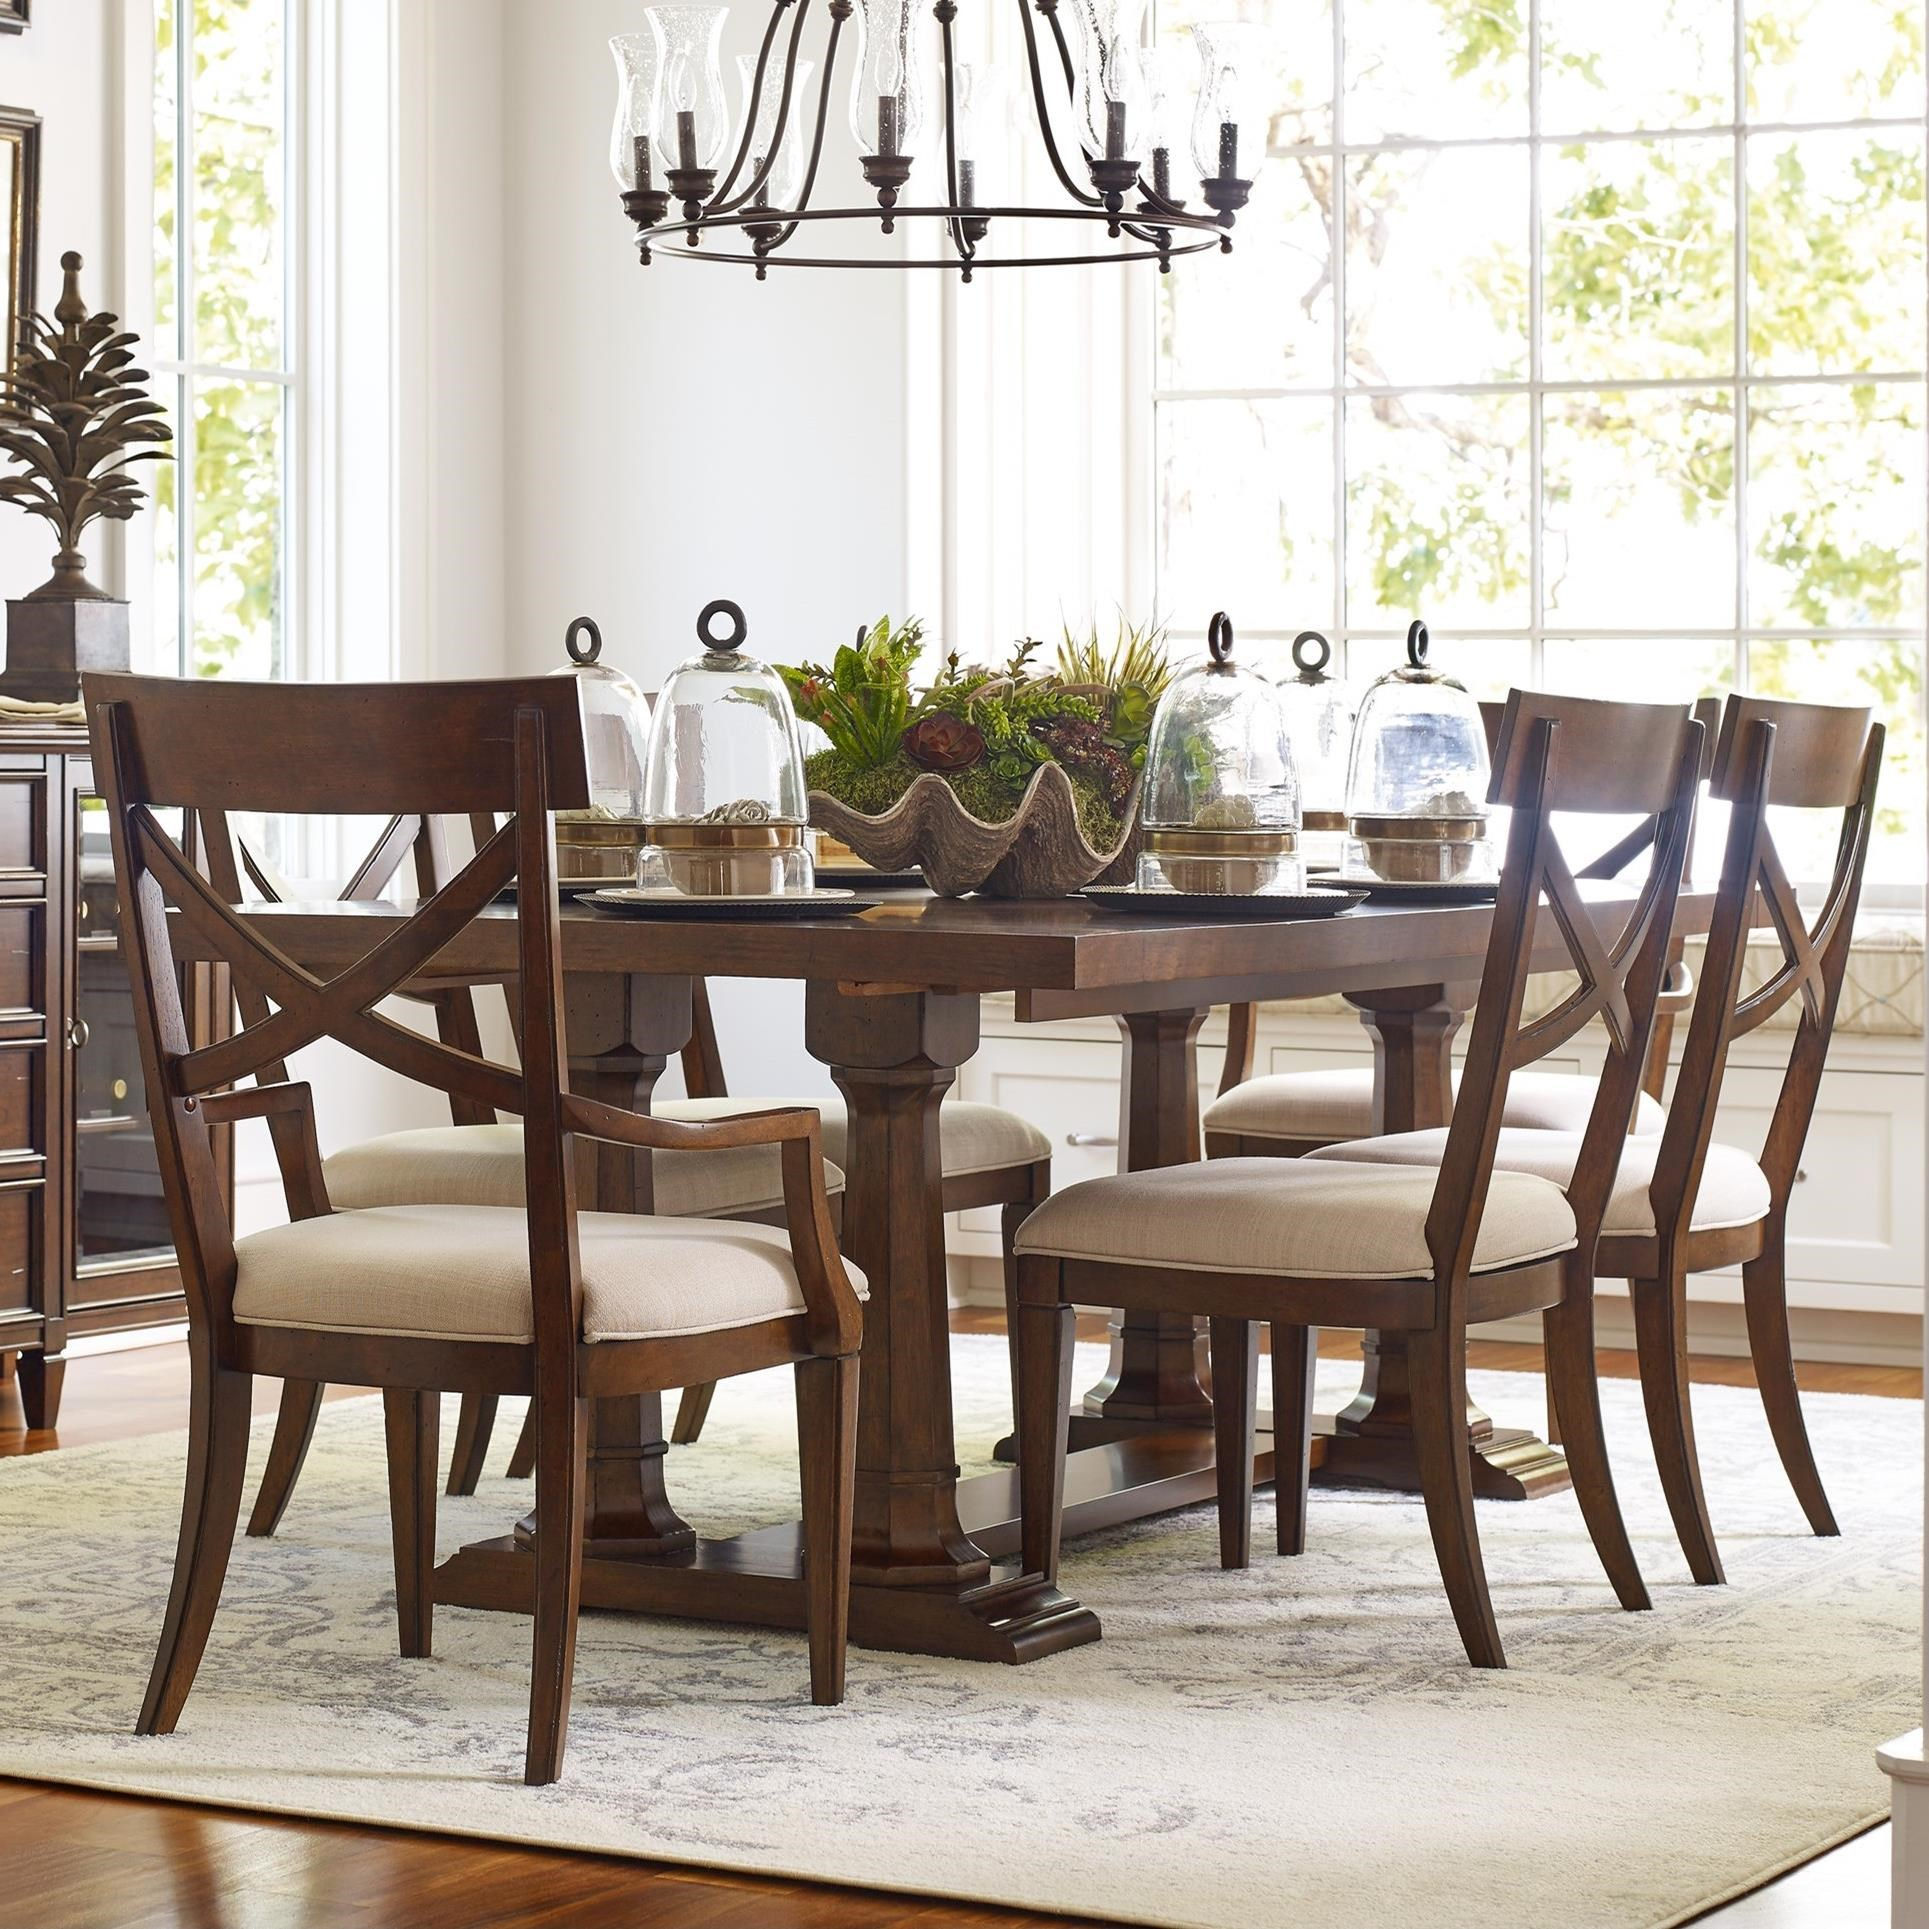 Rachael Ray Home by Legacy Classic Upstate 7 Piece Trestle Table & Chair Set - Item Number: 6040-622K+2x241 KD+4x240 KD